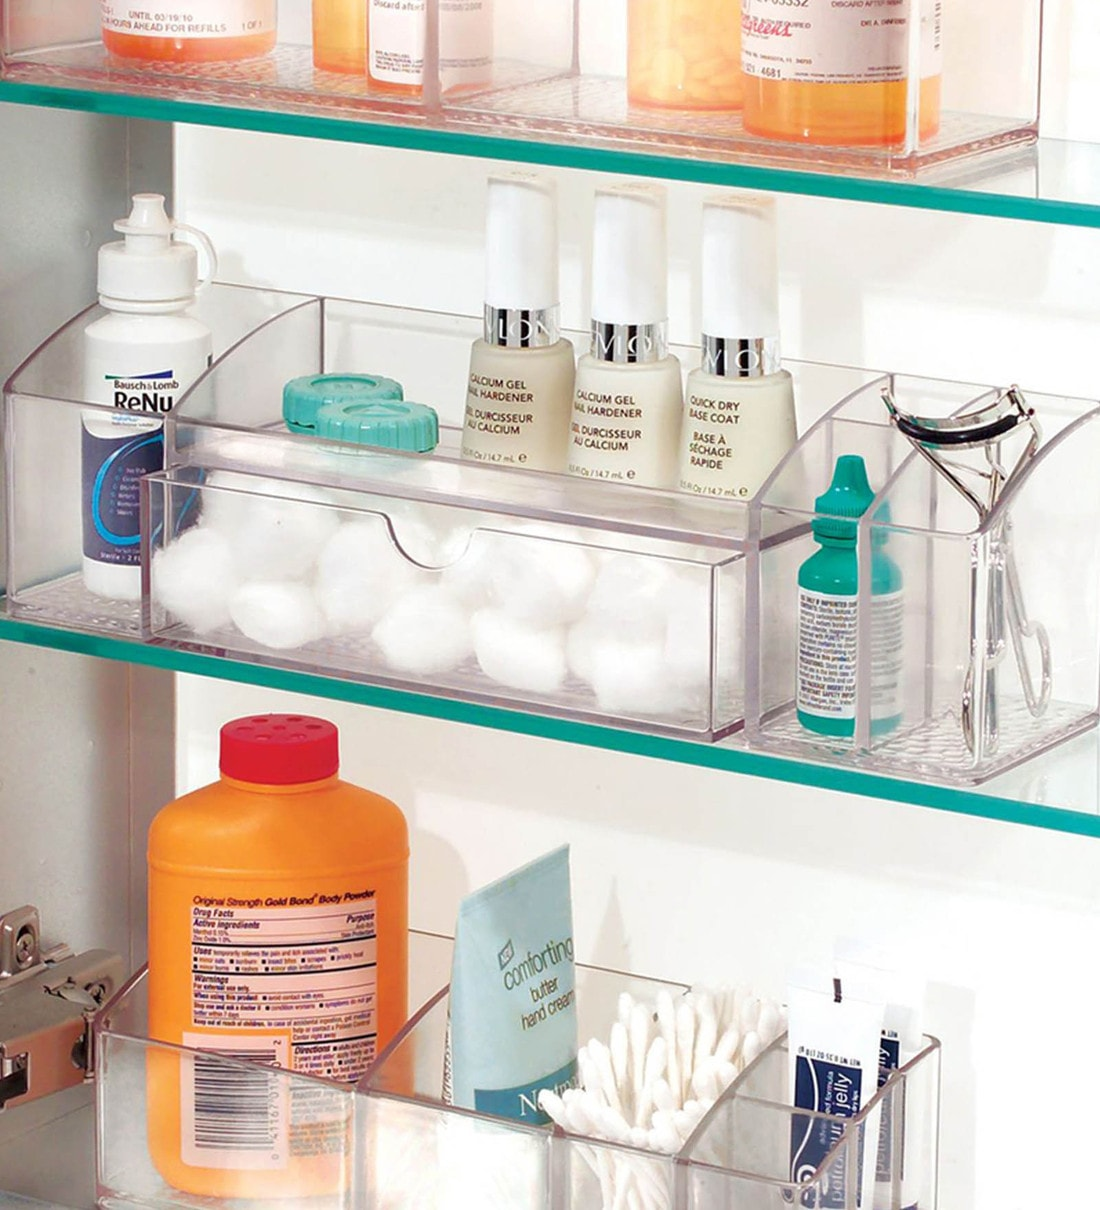 Buy Interdesign Med Bathroom Medicine Cabinet Organizer For Makeup Contact Lenses Solution Cotton Balls Clear Online Makeup Organisers Accessory Holders Homeware Pepperfry Product